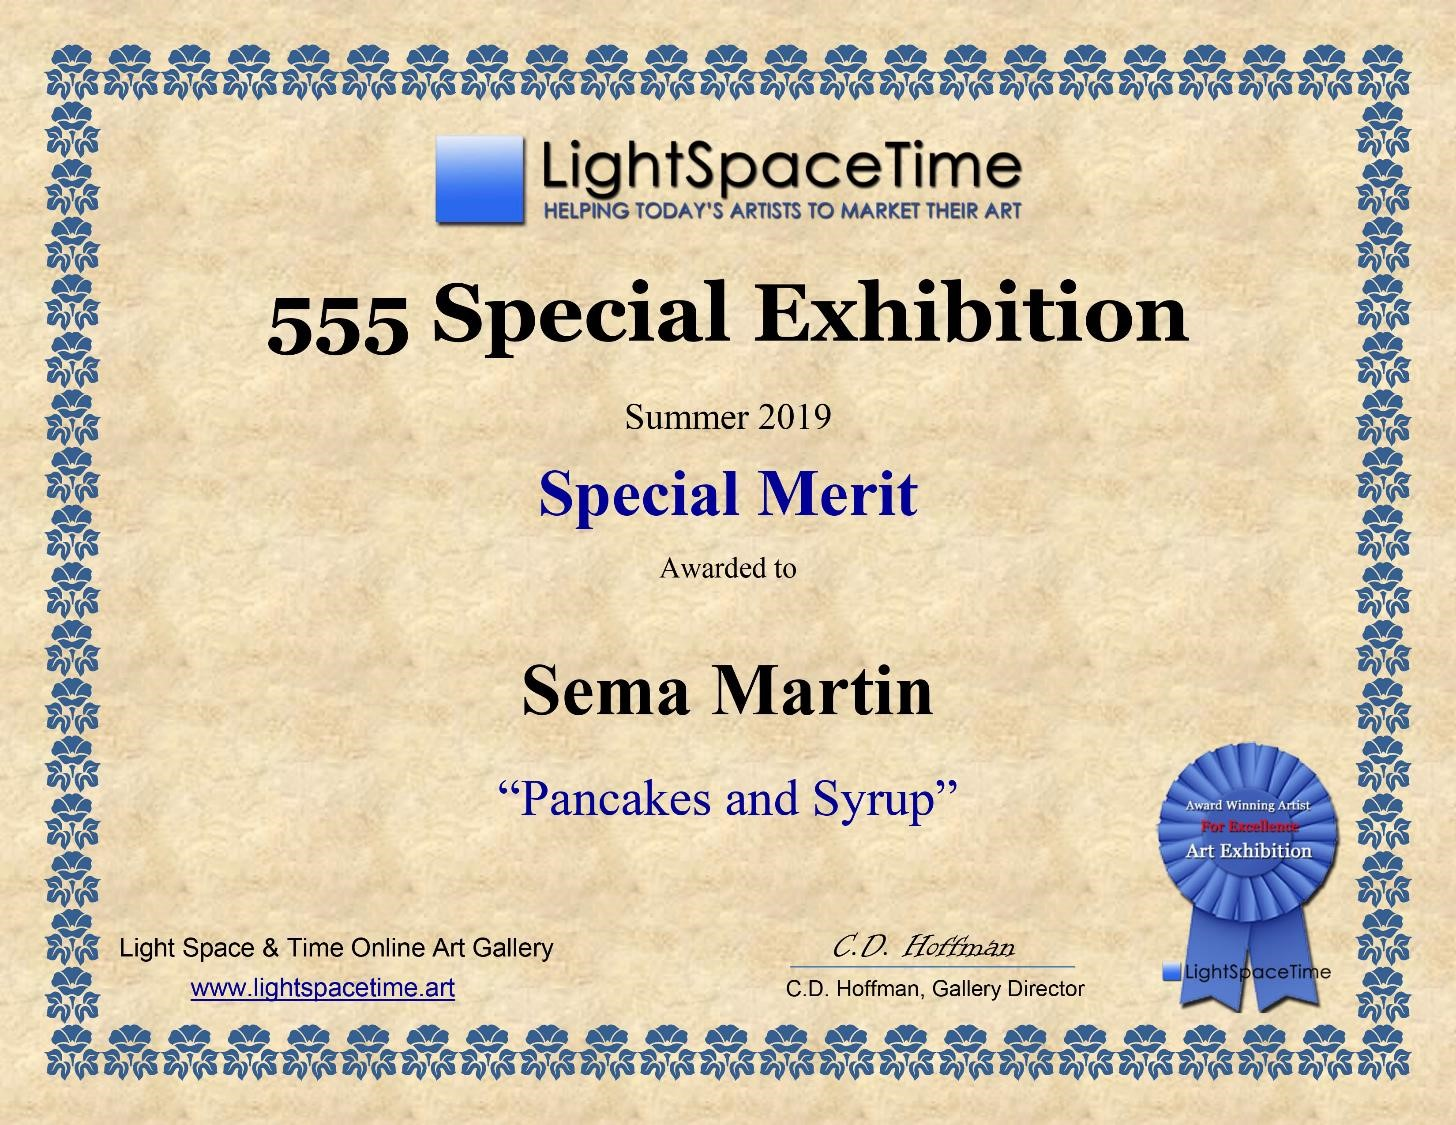 Copy of Light Space Time - 555 Special Exhibition summer 2019, Special Merit, Artist Sema Martin 'Pancakes and Syrup'